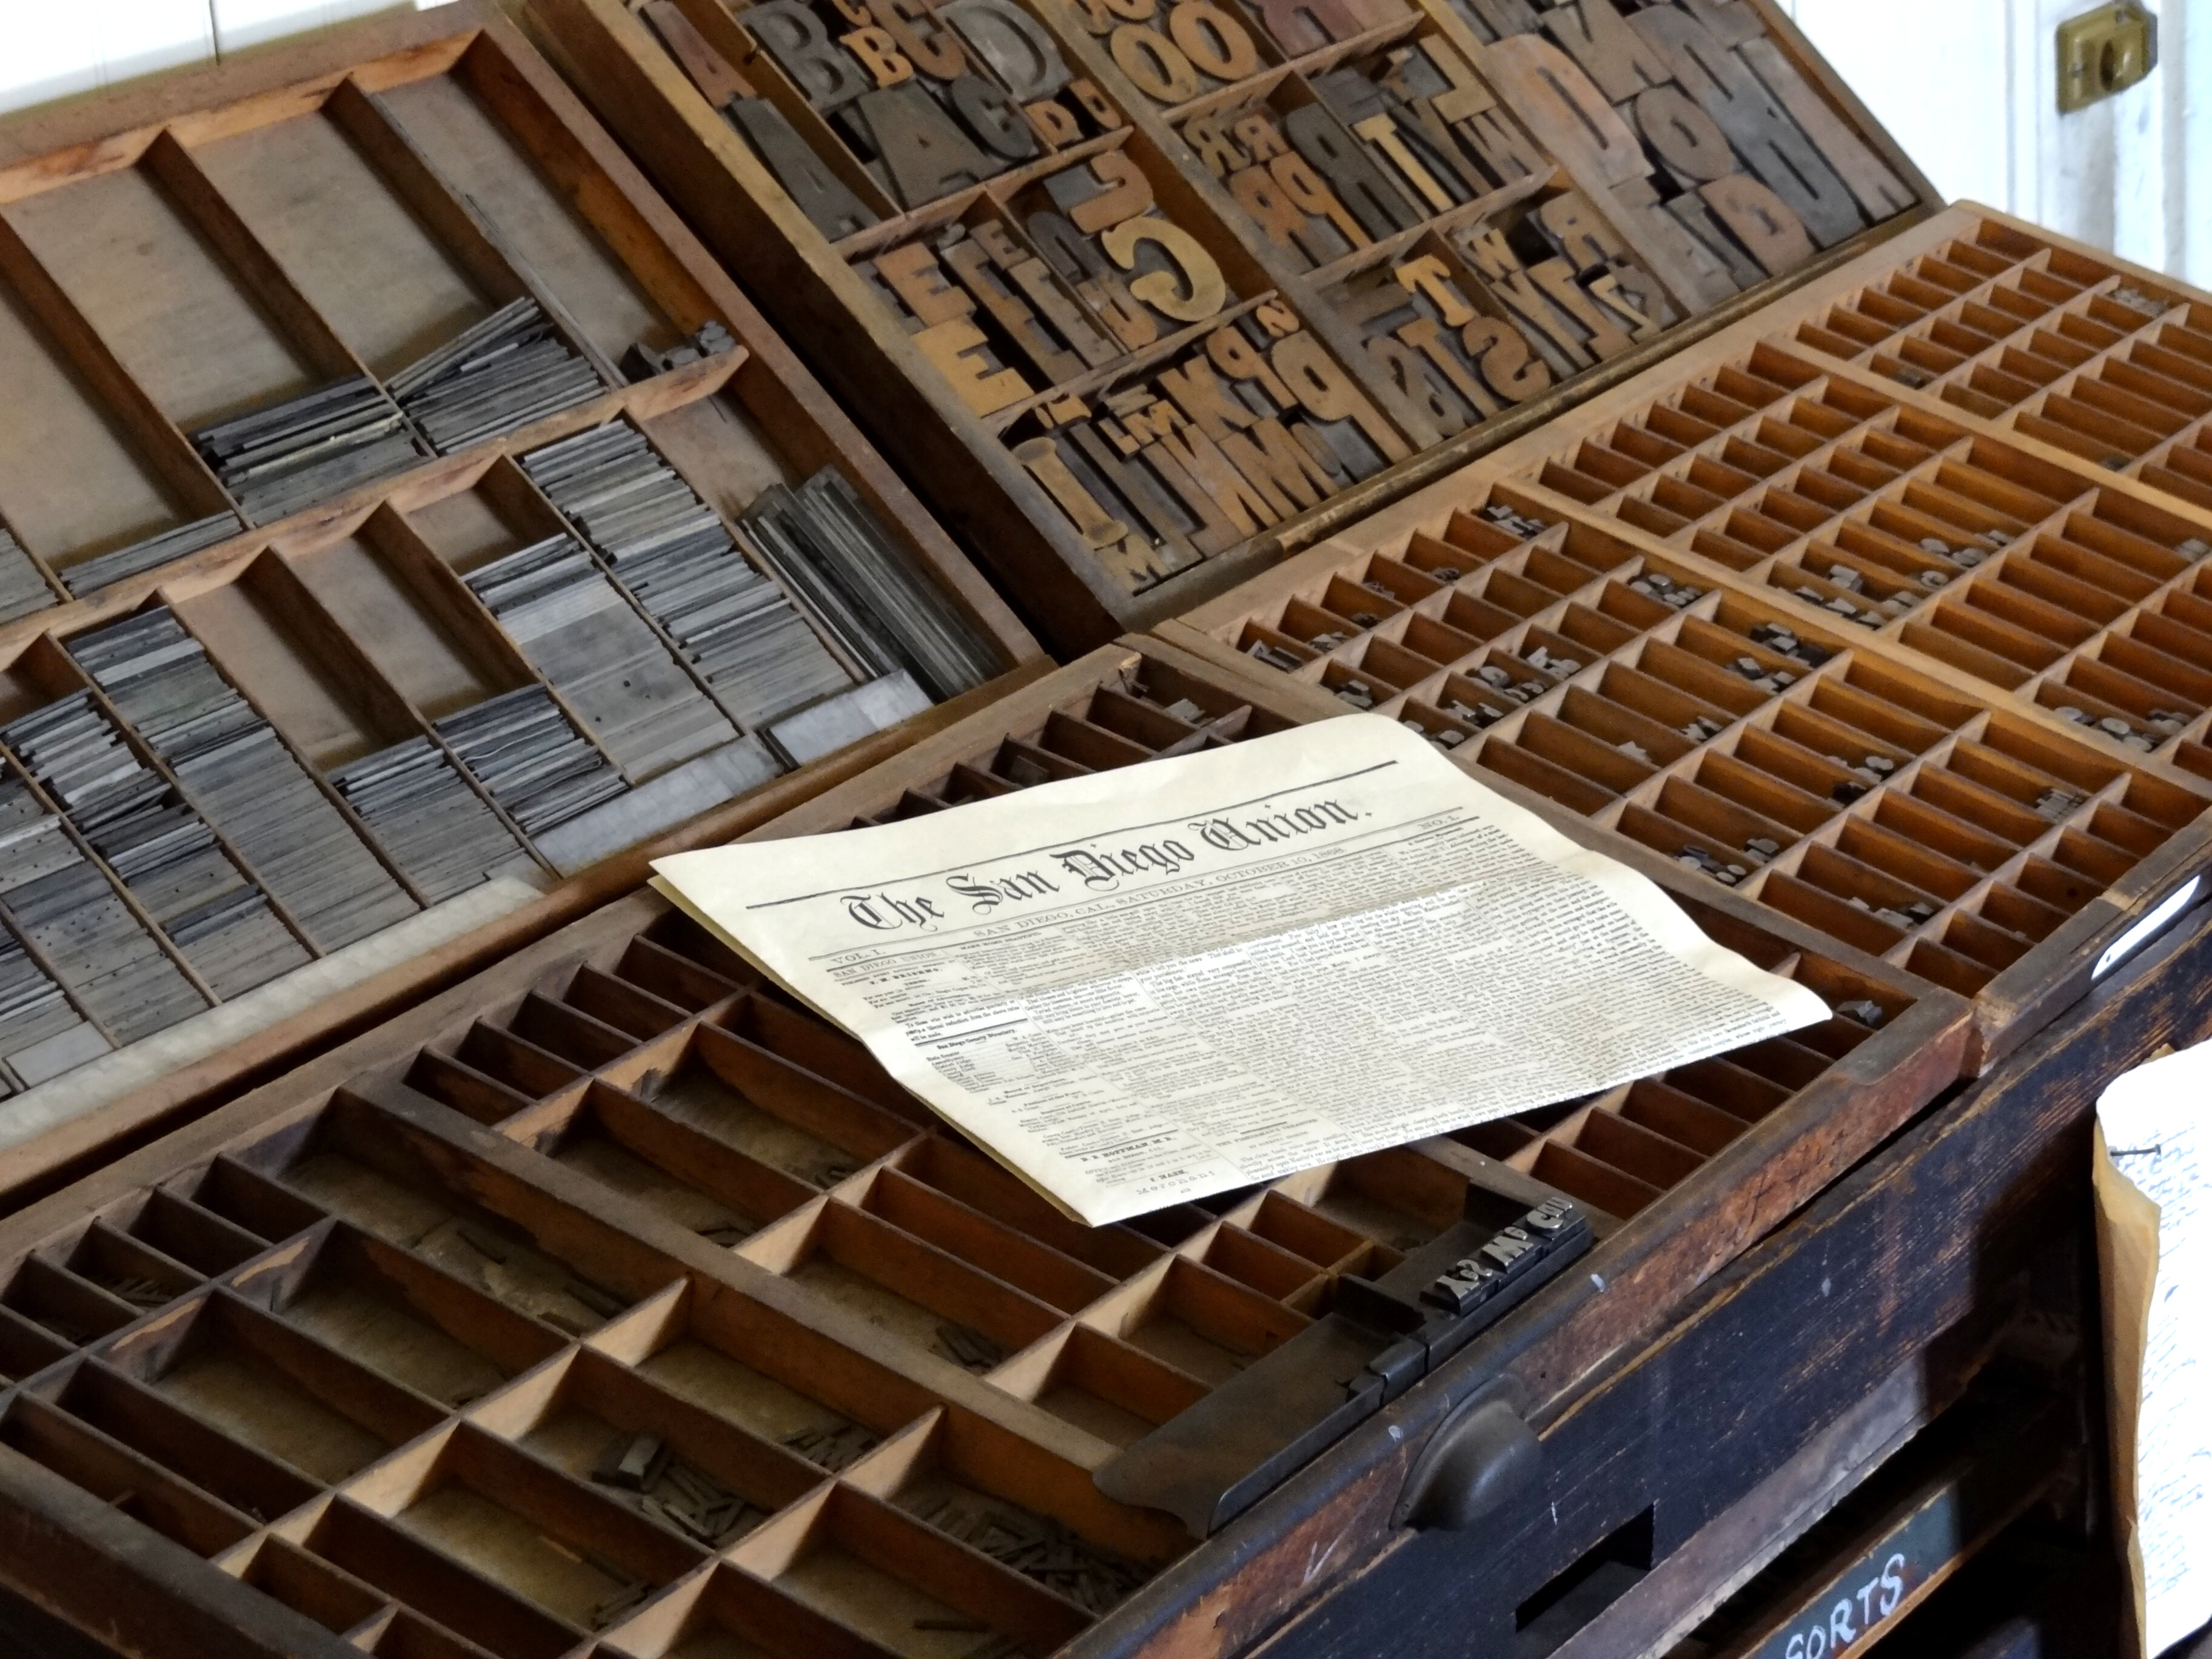 FileHandset Press With Copy Of San Diego Union Newspaper